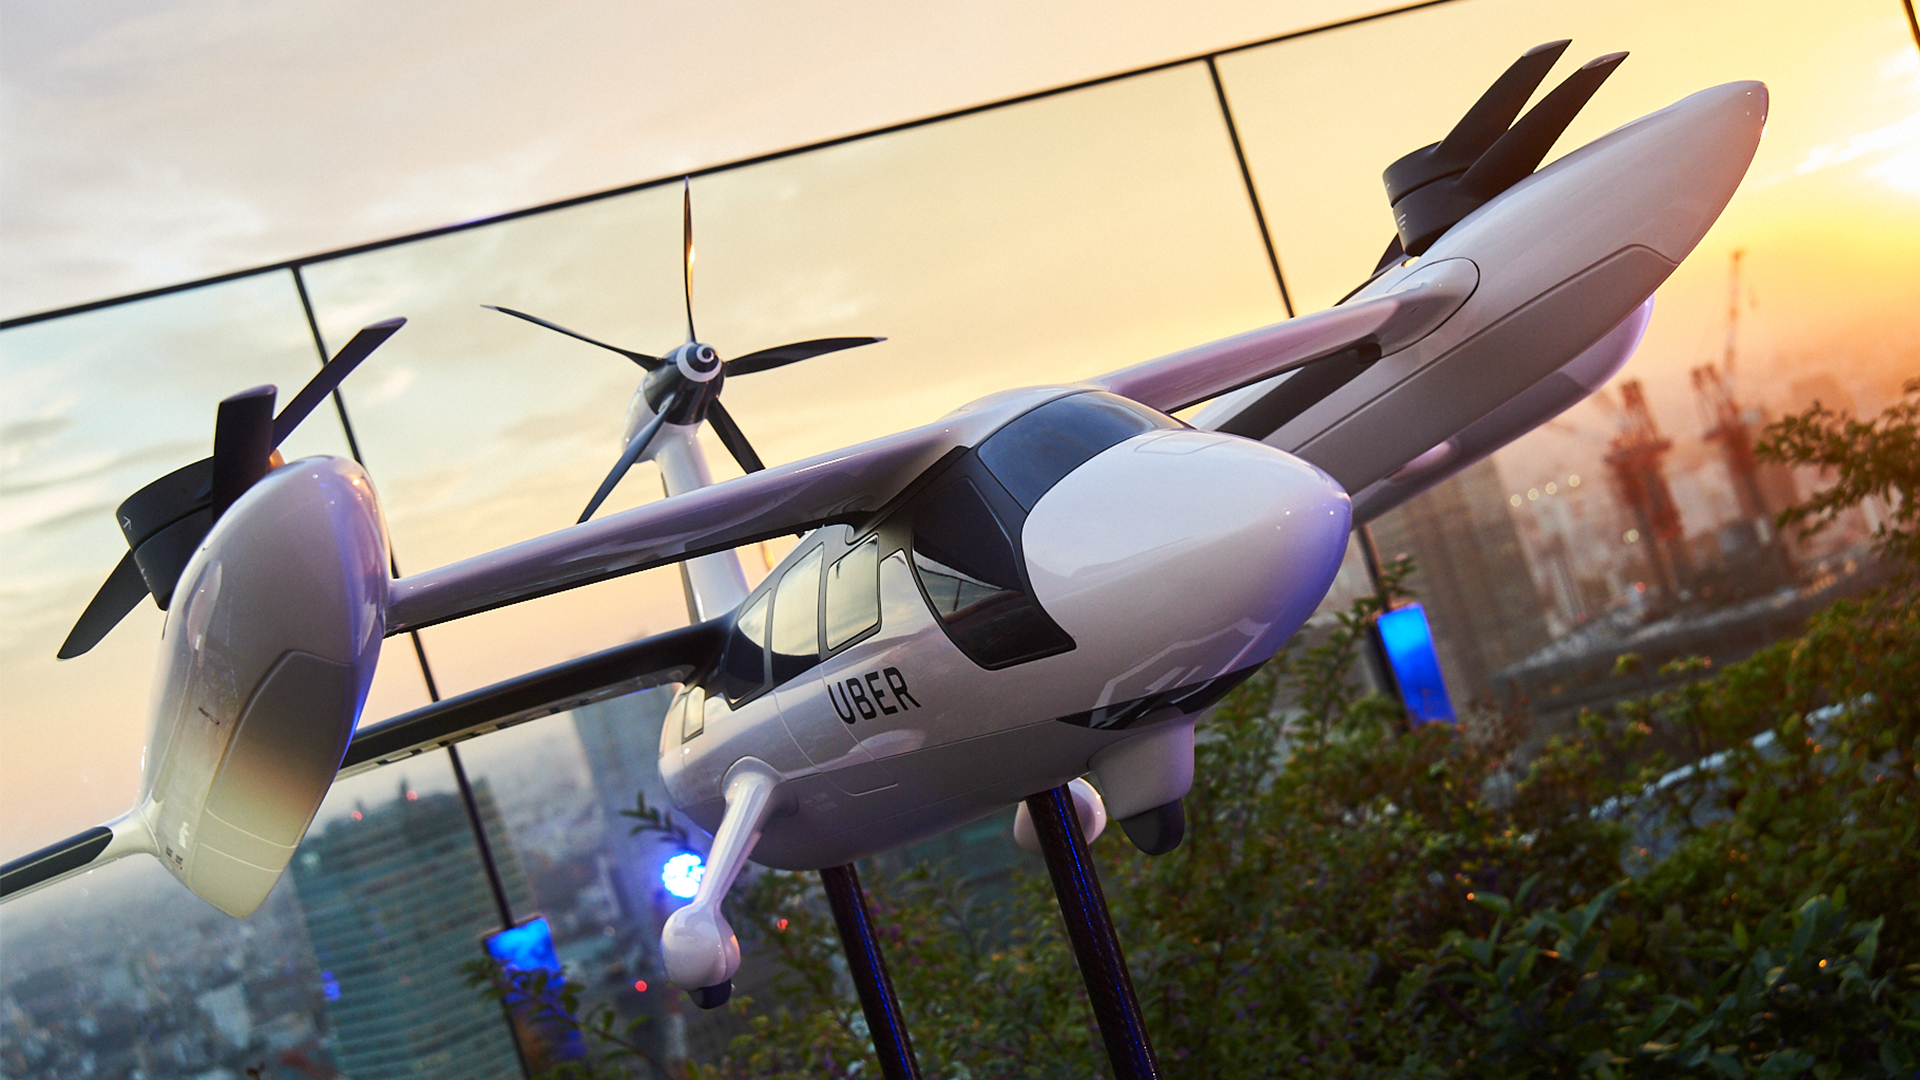 Uber Elevate - Flying Taxis